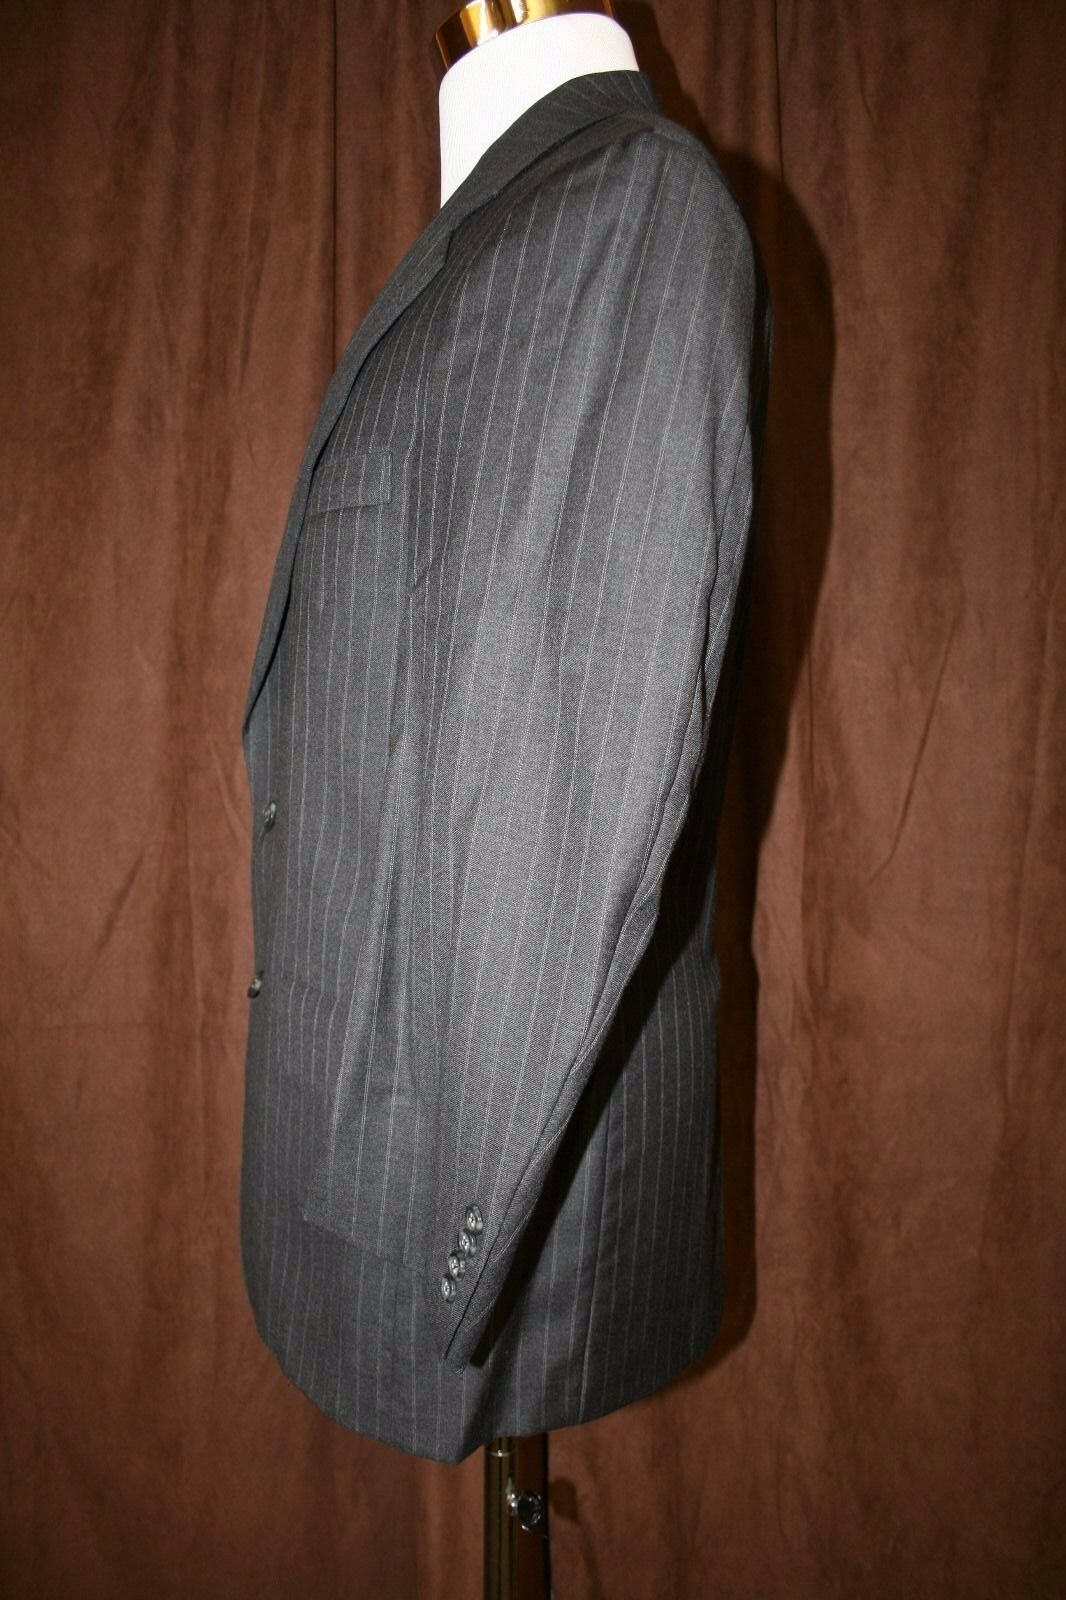 Brooks Brooks Brooks Brothers Hand Tailorosso Blazer 39R Gris Pinstripe 2 Button Union Made USA 3c9728